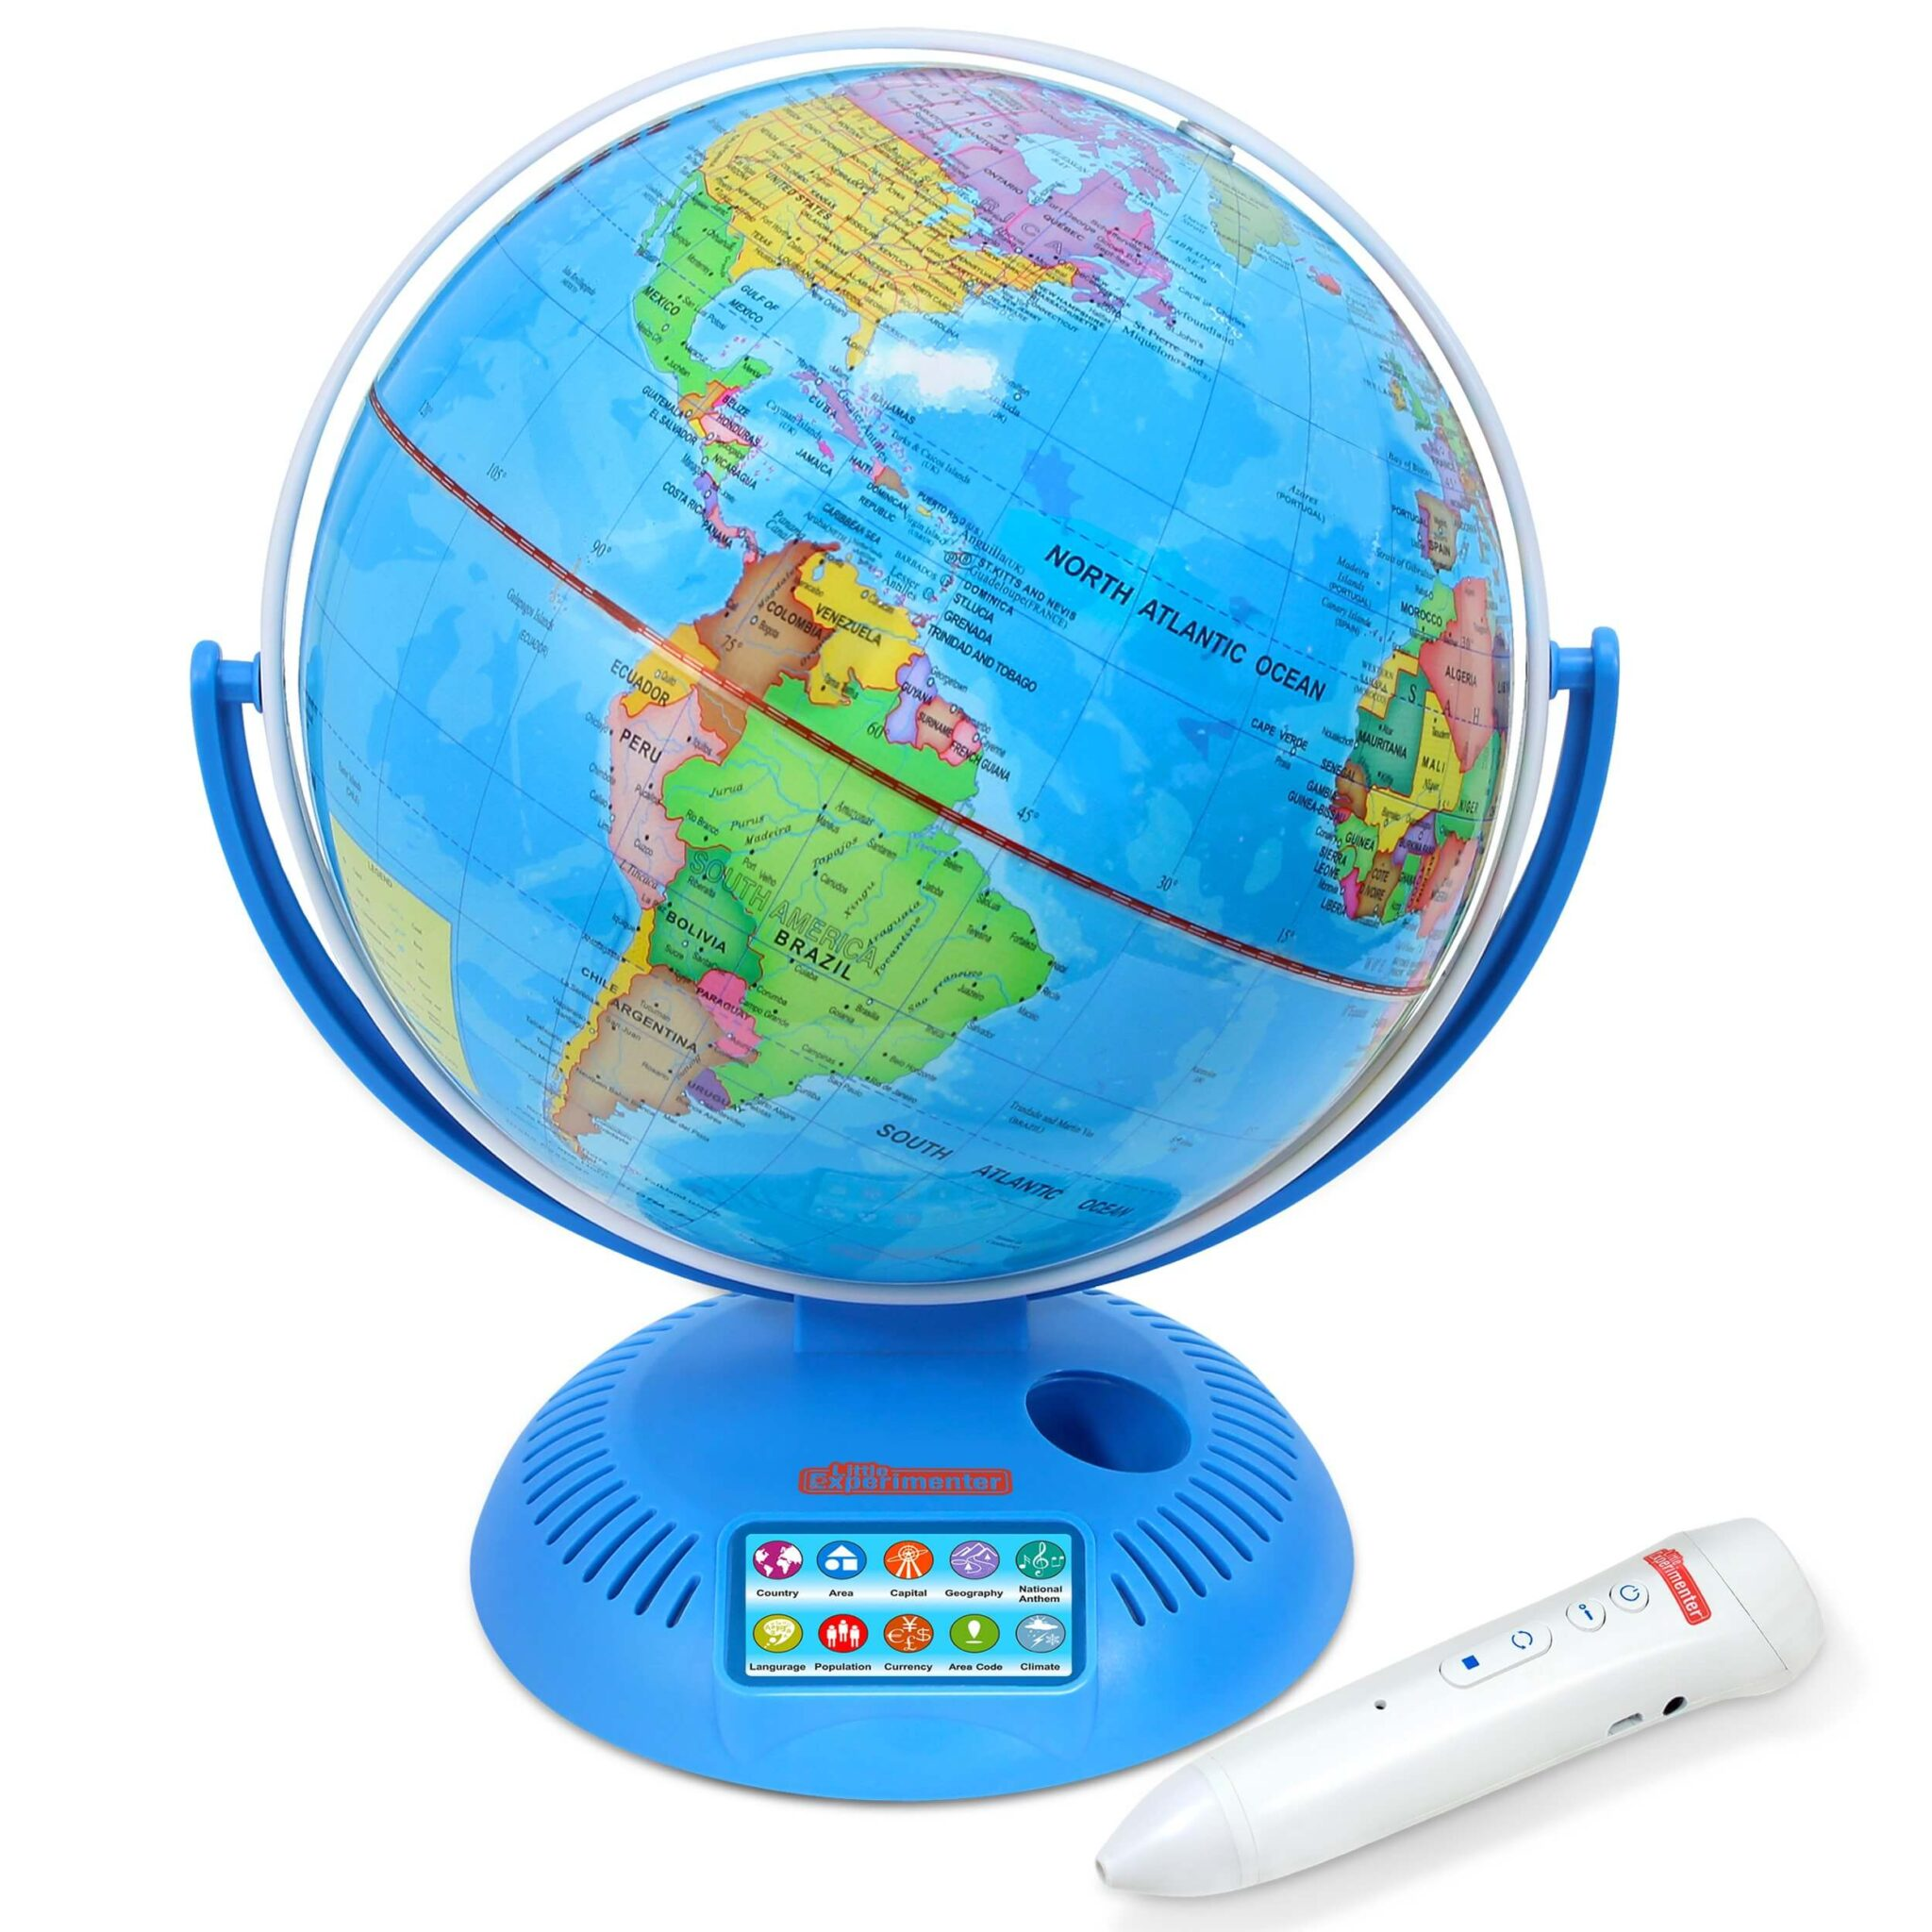 Little Experimenter Talking Globe - Interactive Globe for Kids Learning with Smart Pen